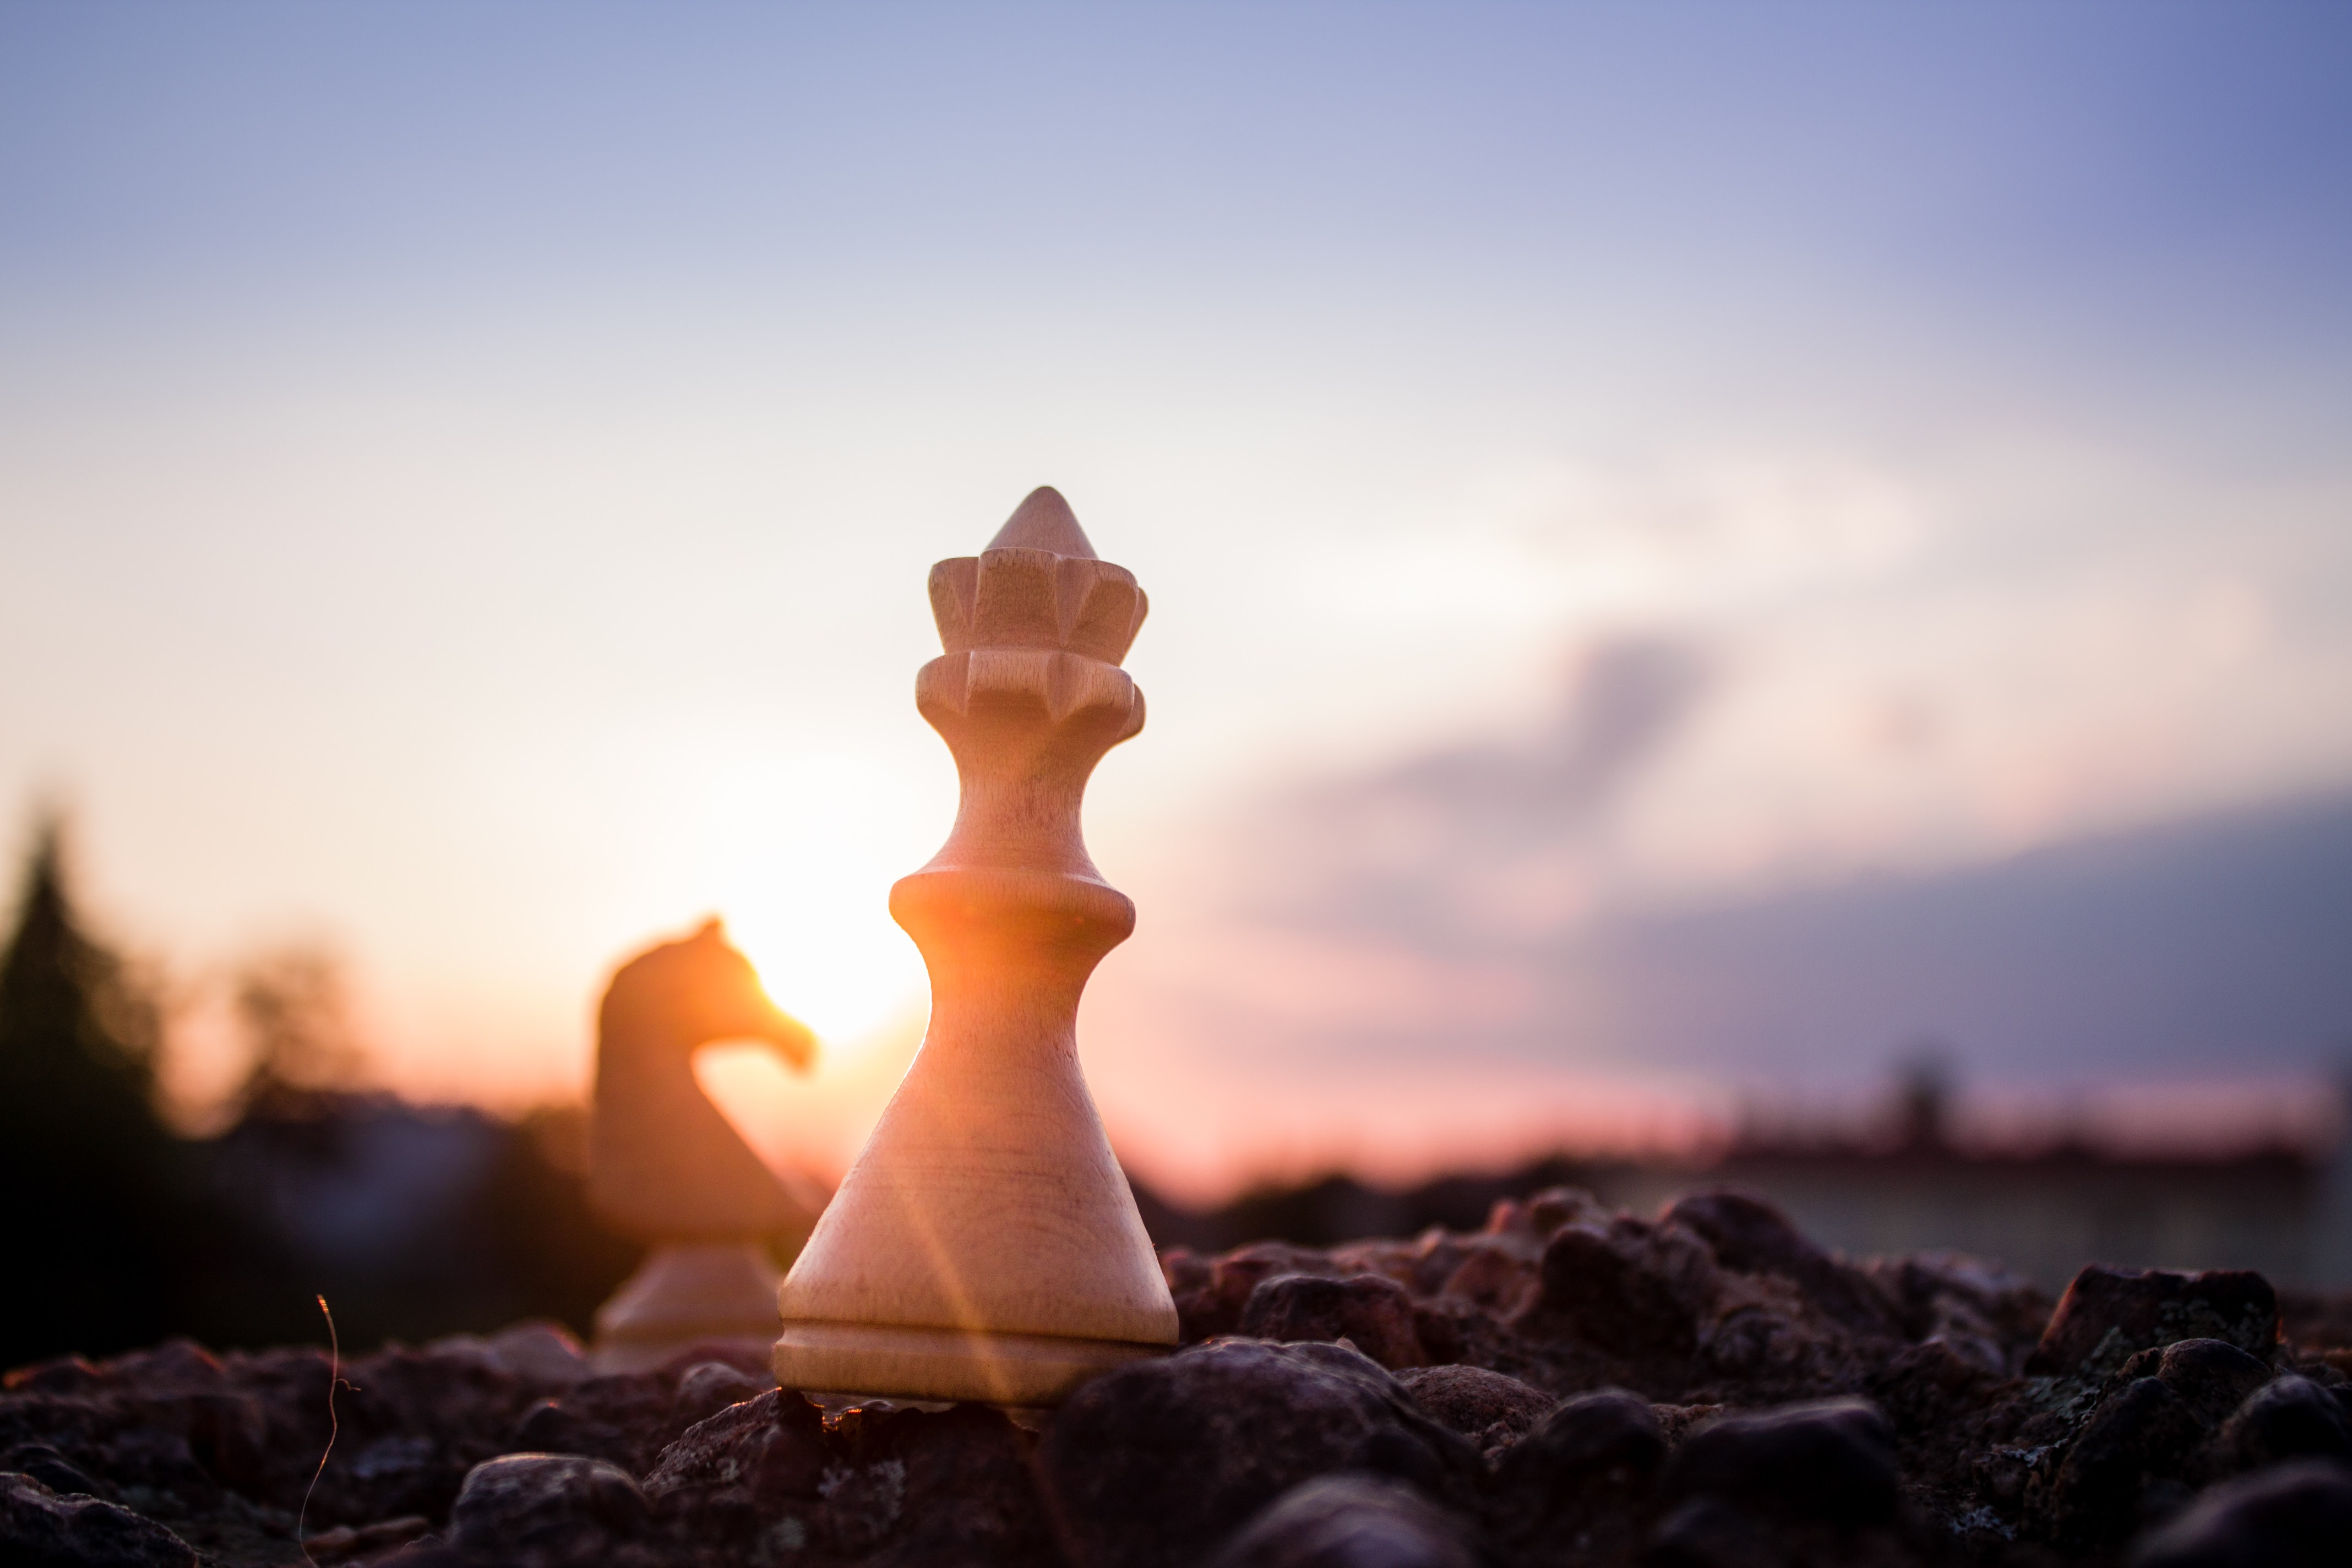 A Large chess piece on a chess board, under a sunset